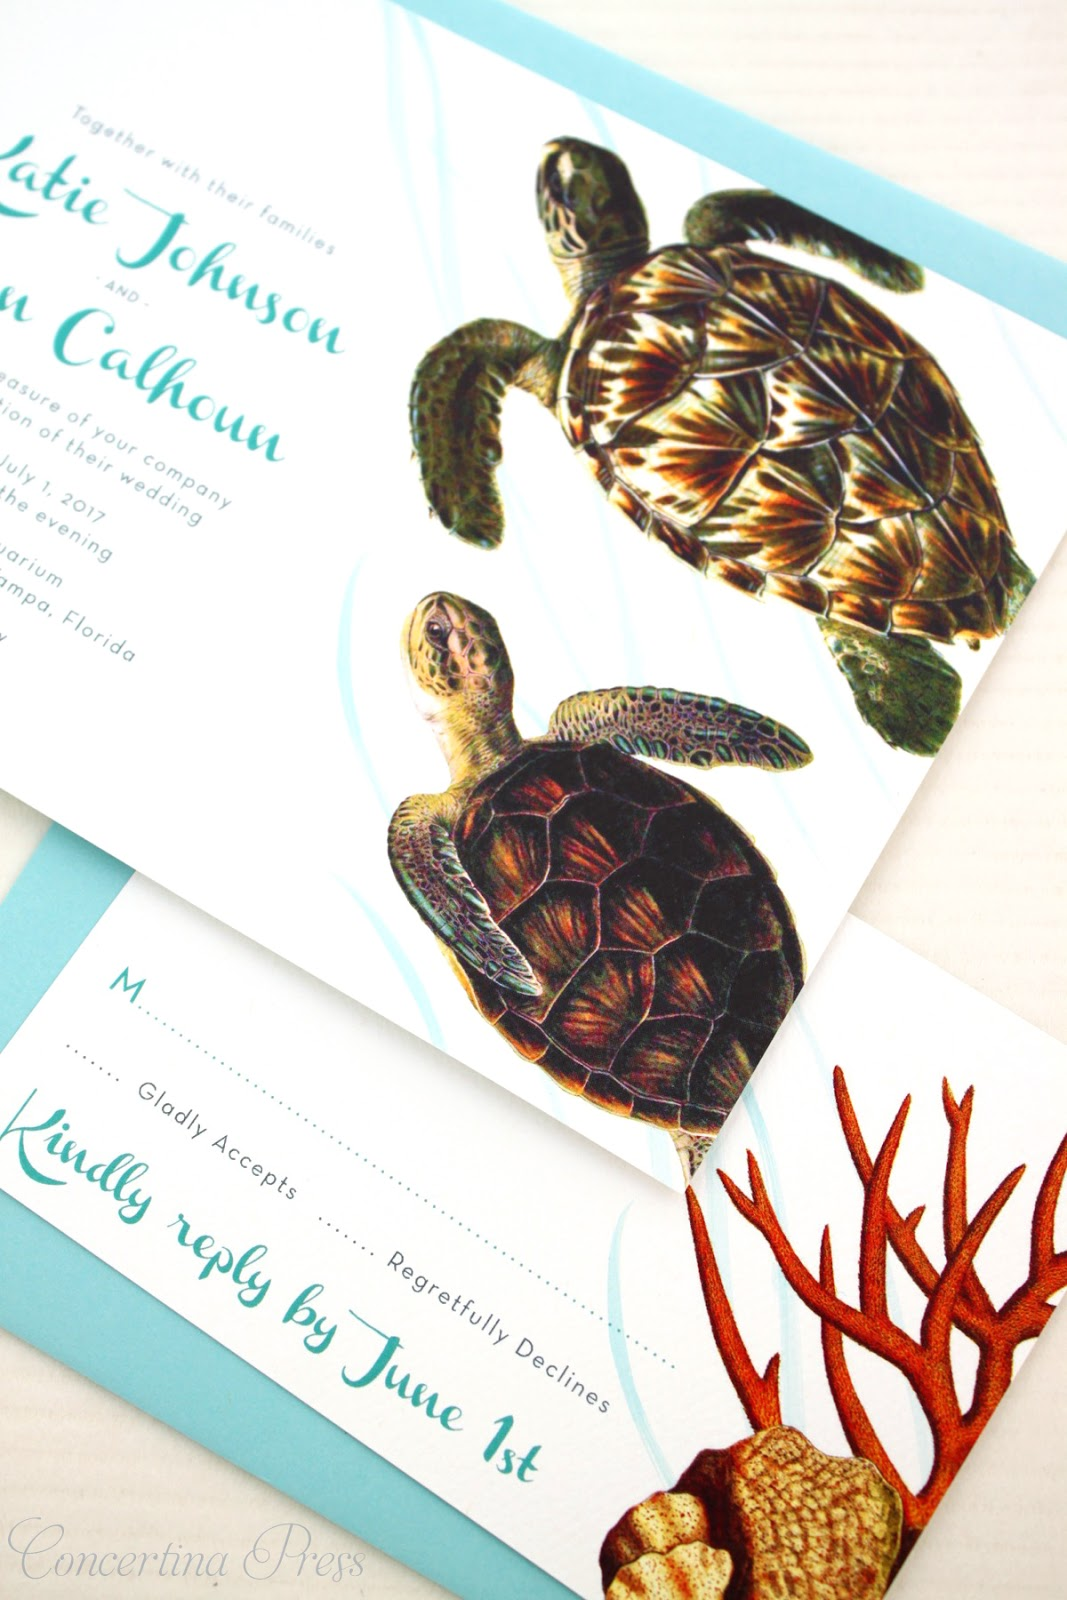 Sea Turtle Wedding Invitations with Coral RSVP cards - having reception at an aquarium